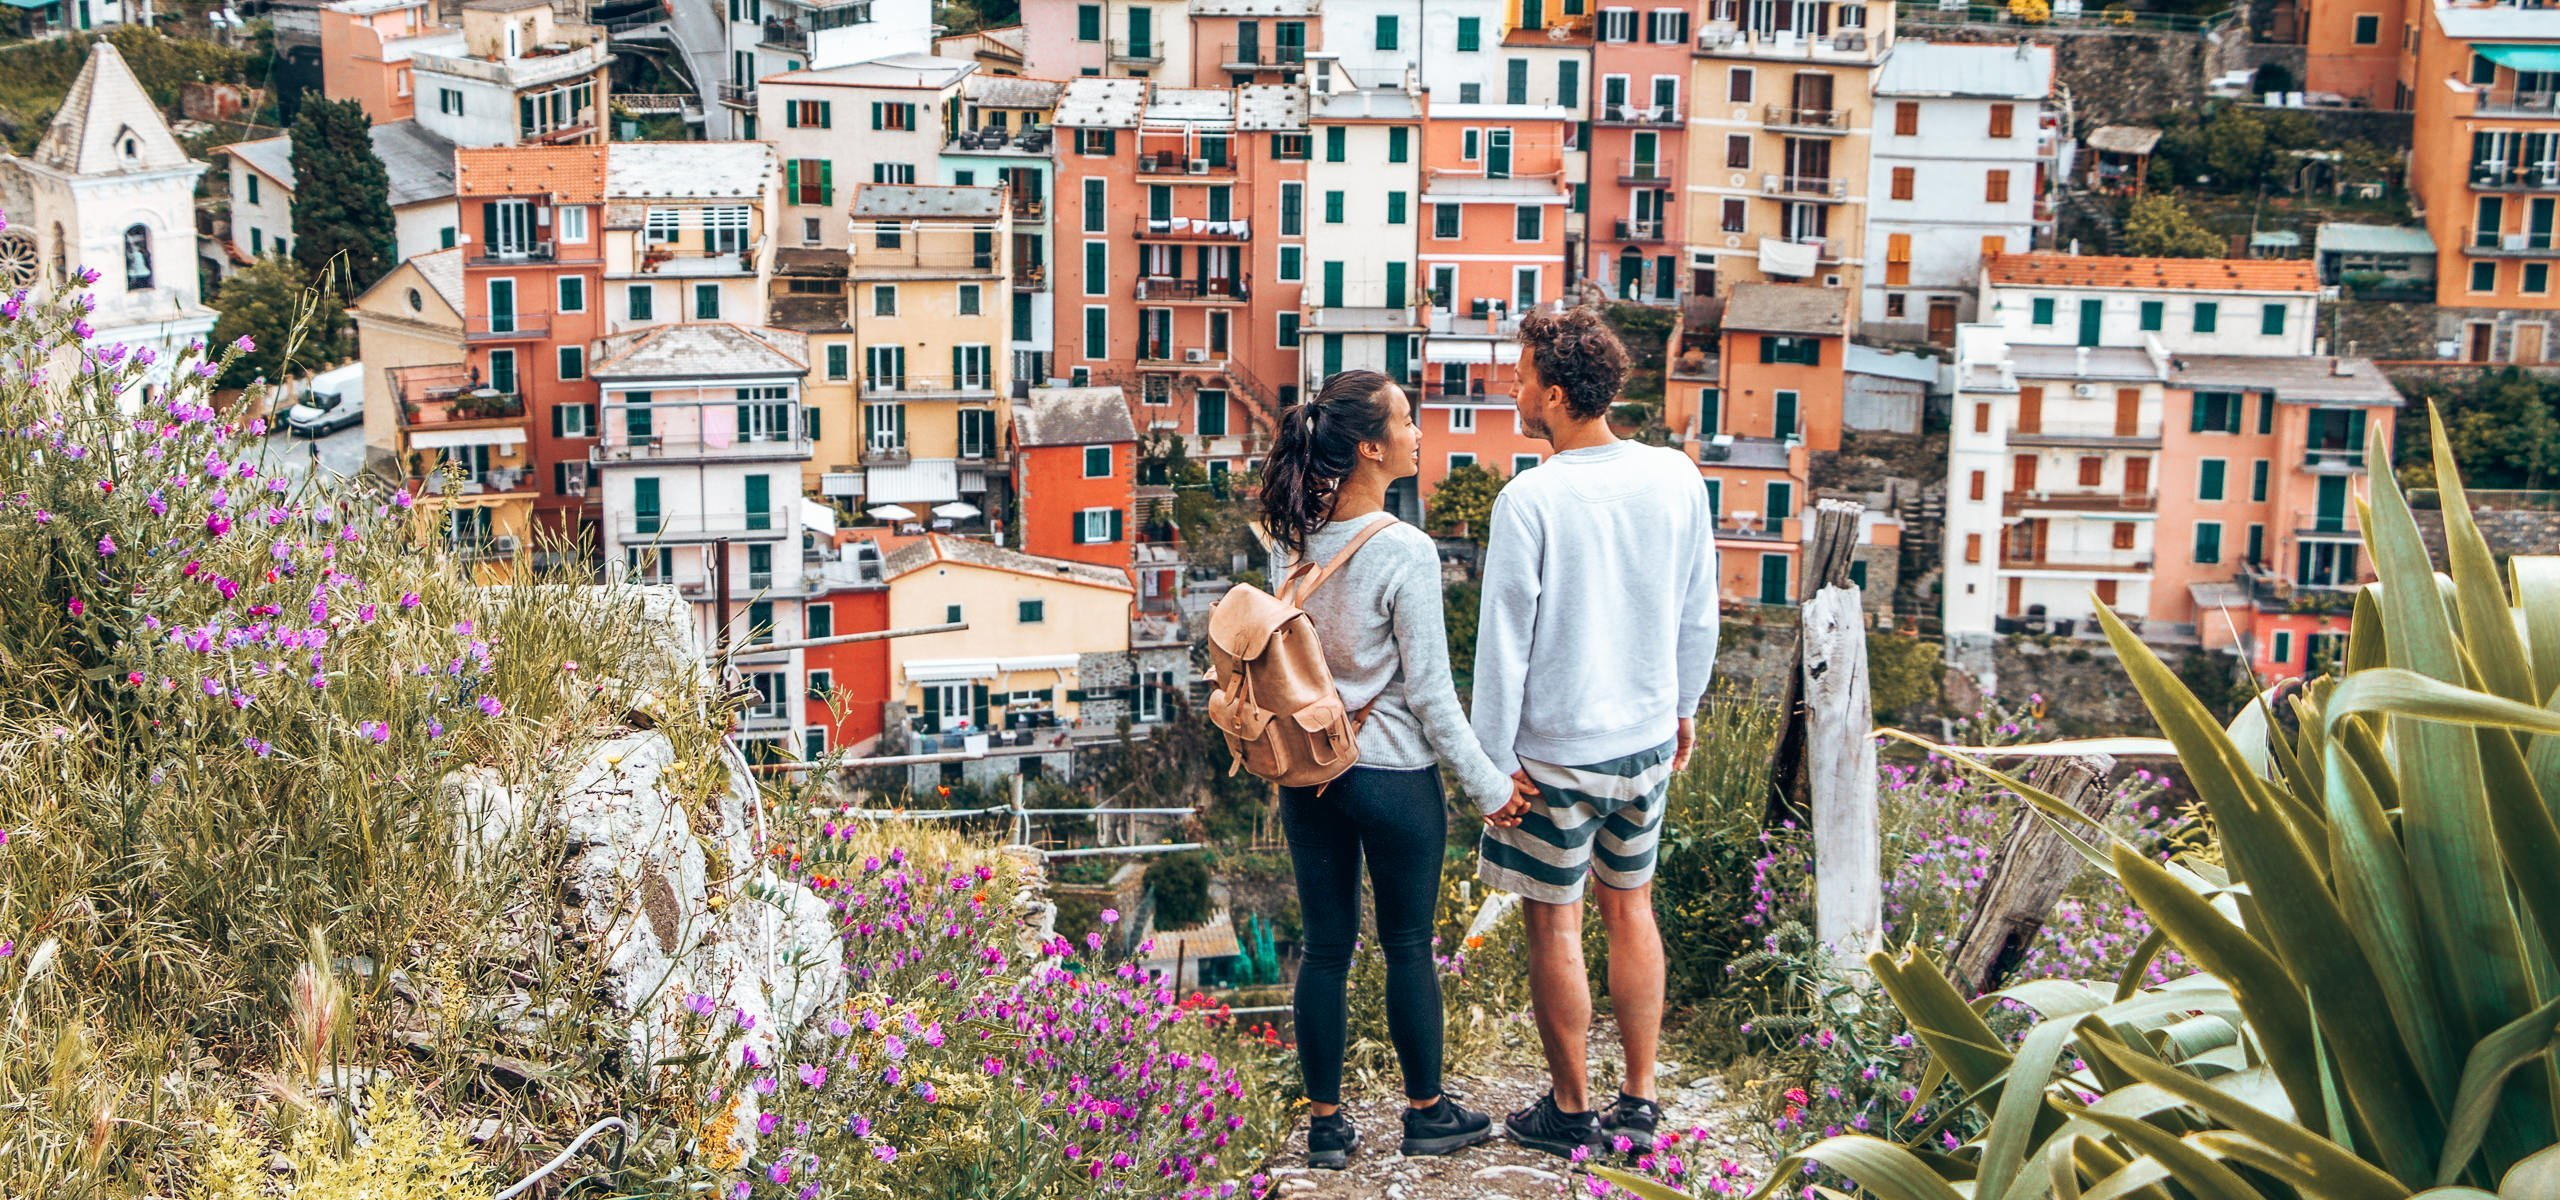 A couple holds hands overlooking the colourful houses of Manarola, Cinque Terre